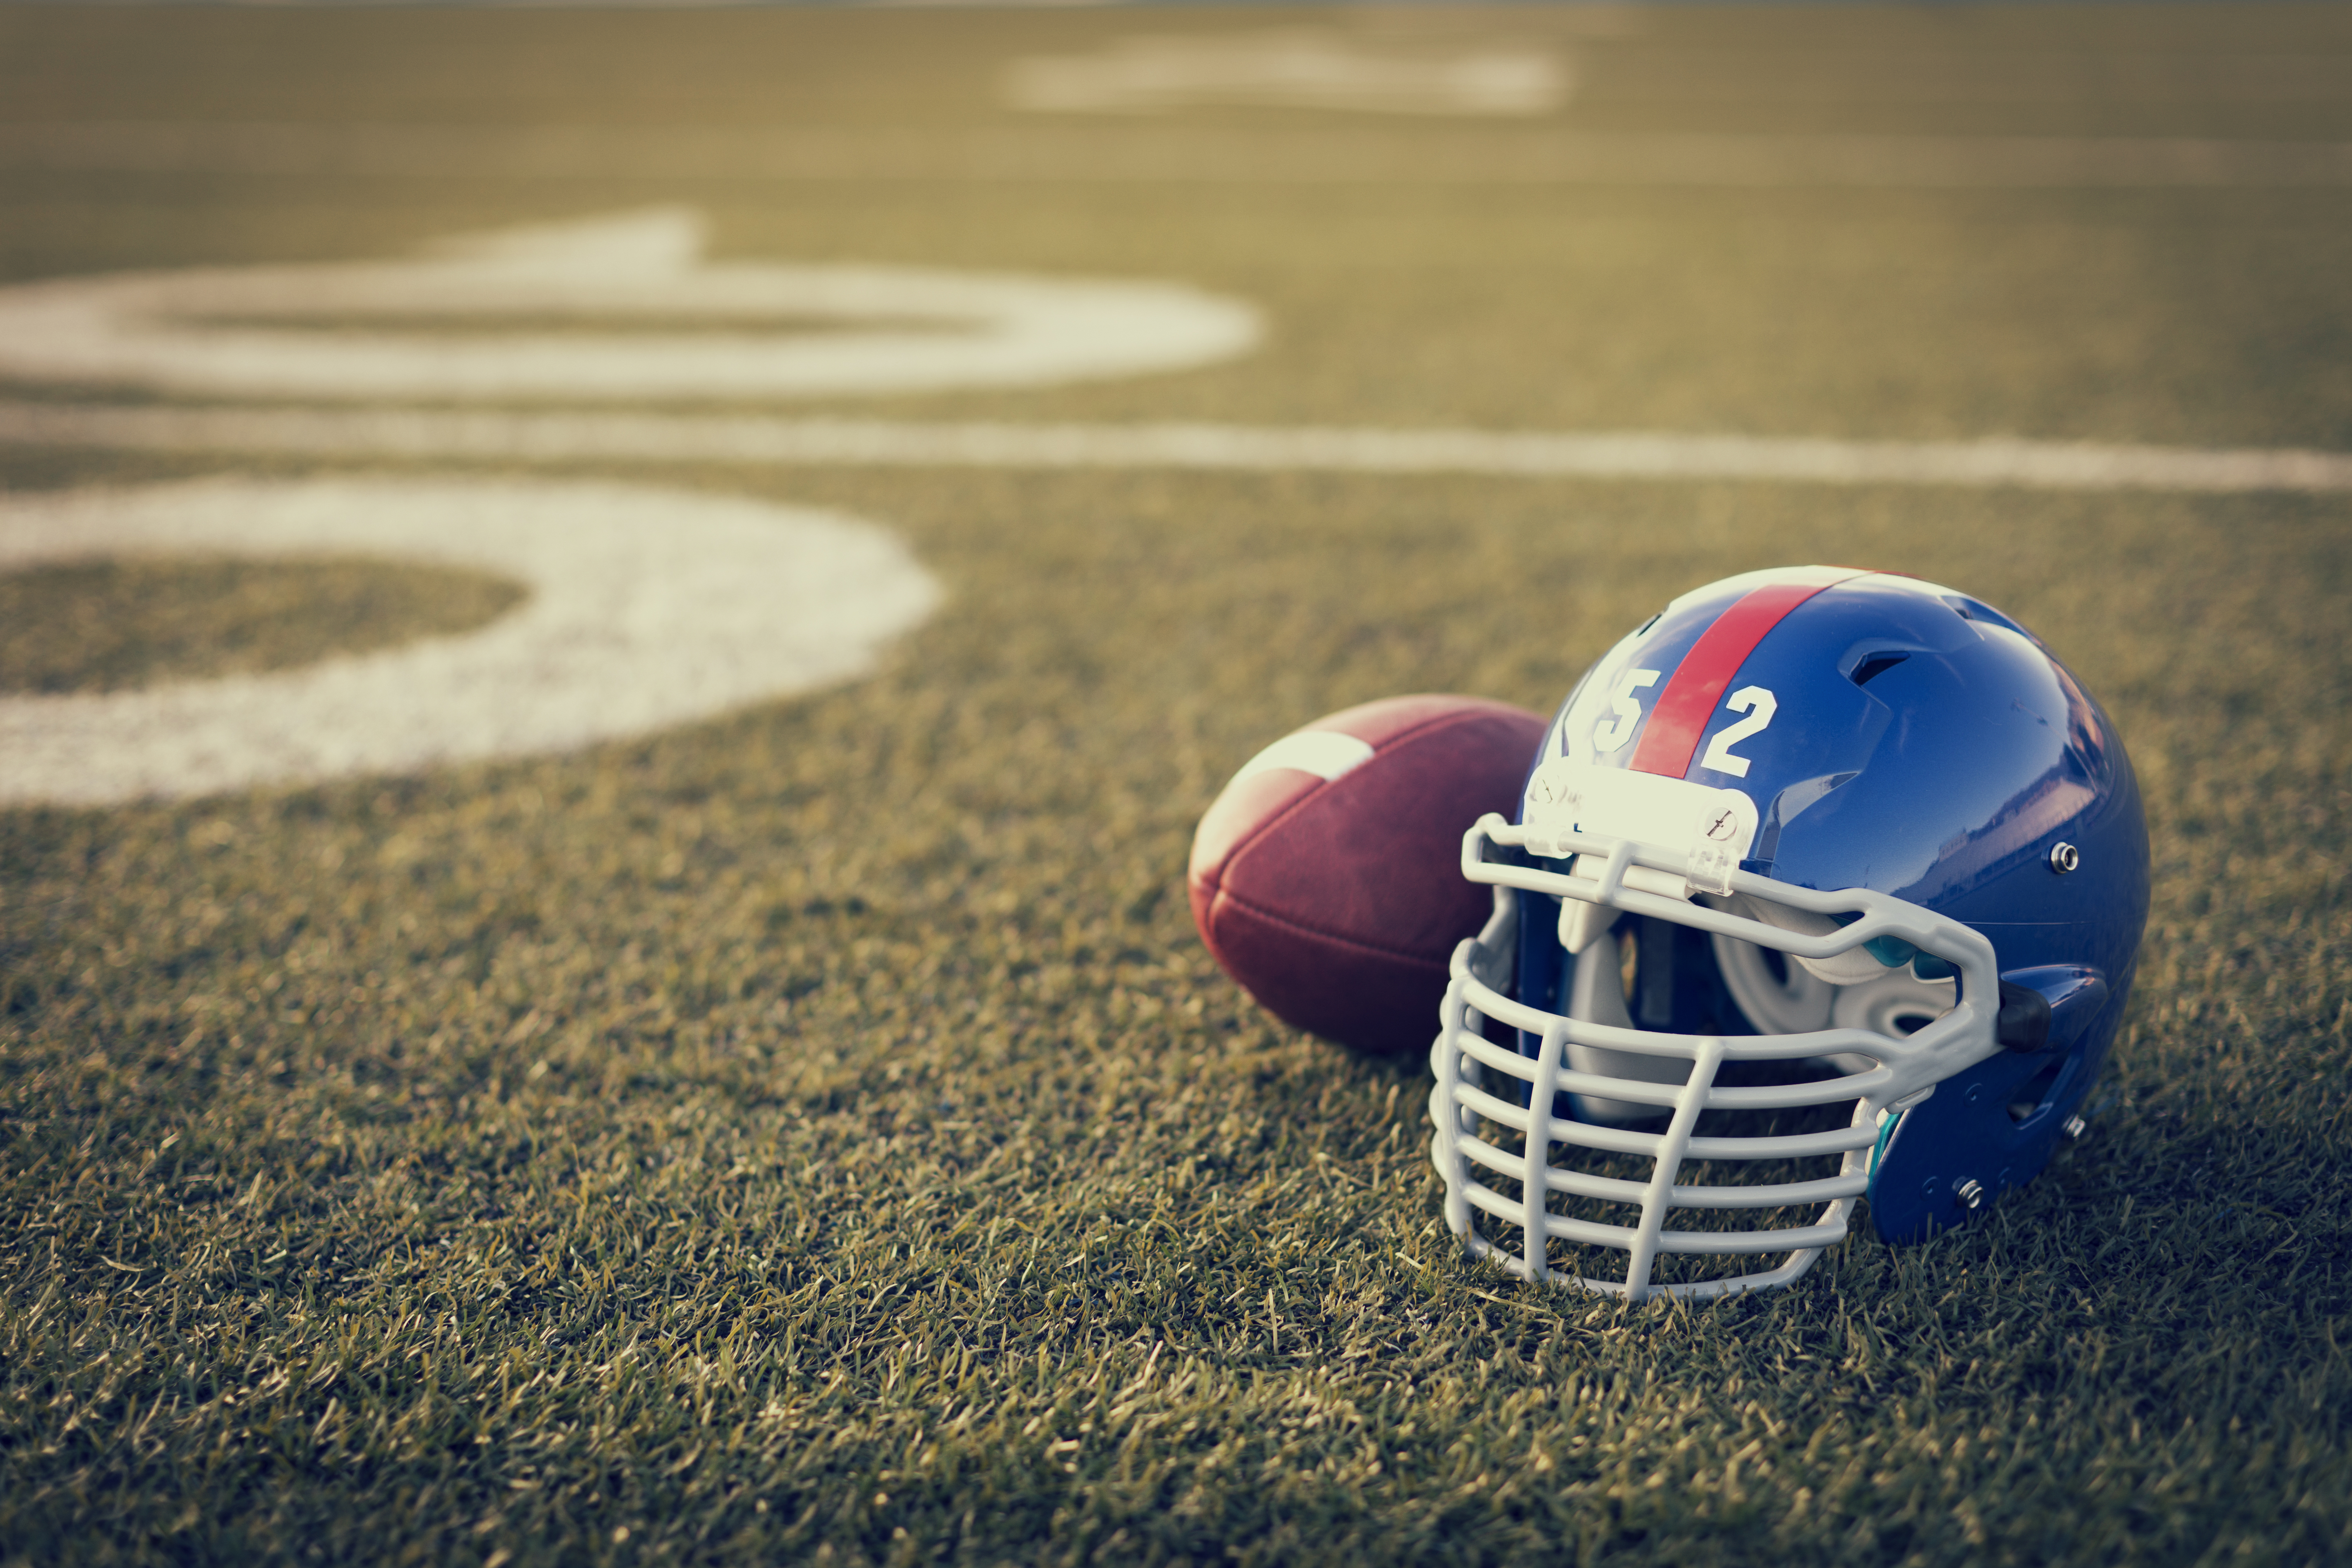 Become Eligible For Nfl - If Not Now, When?